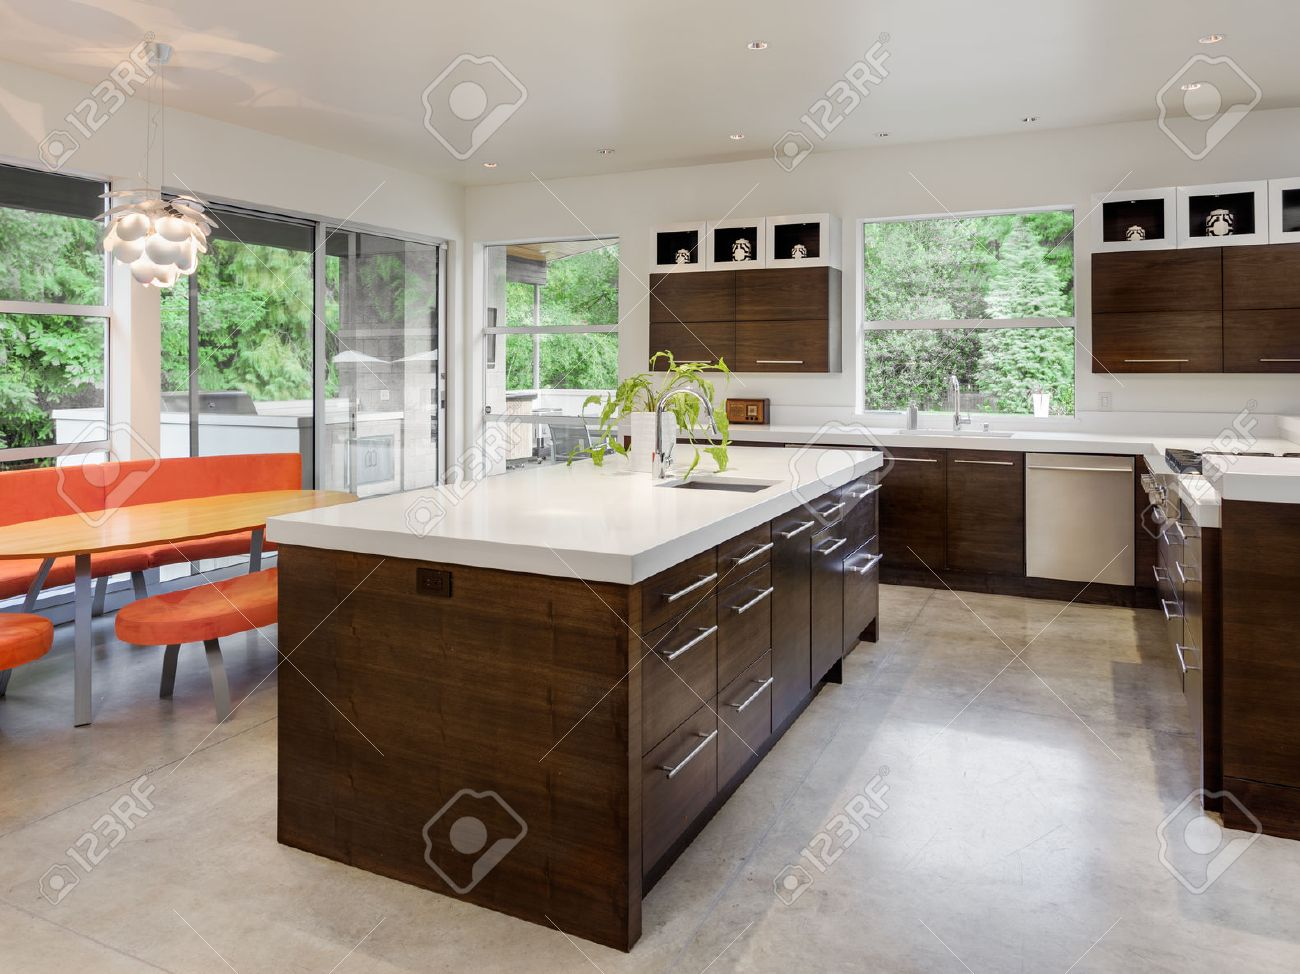 Table Kitchen Kitchen With Island Sink Cabinets And Dining Table In New Luxury